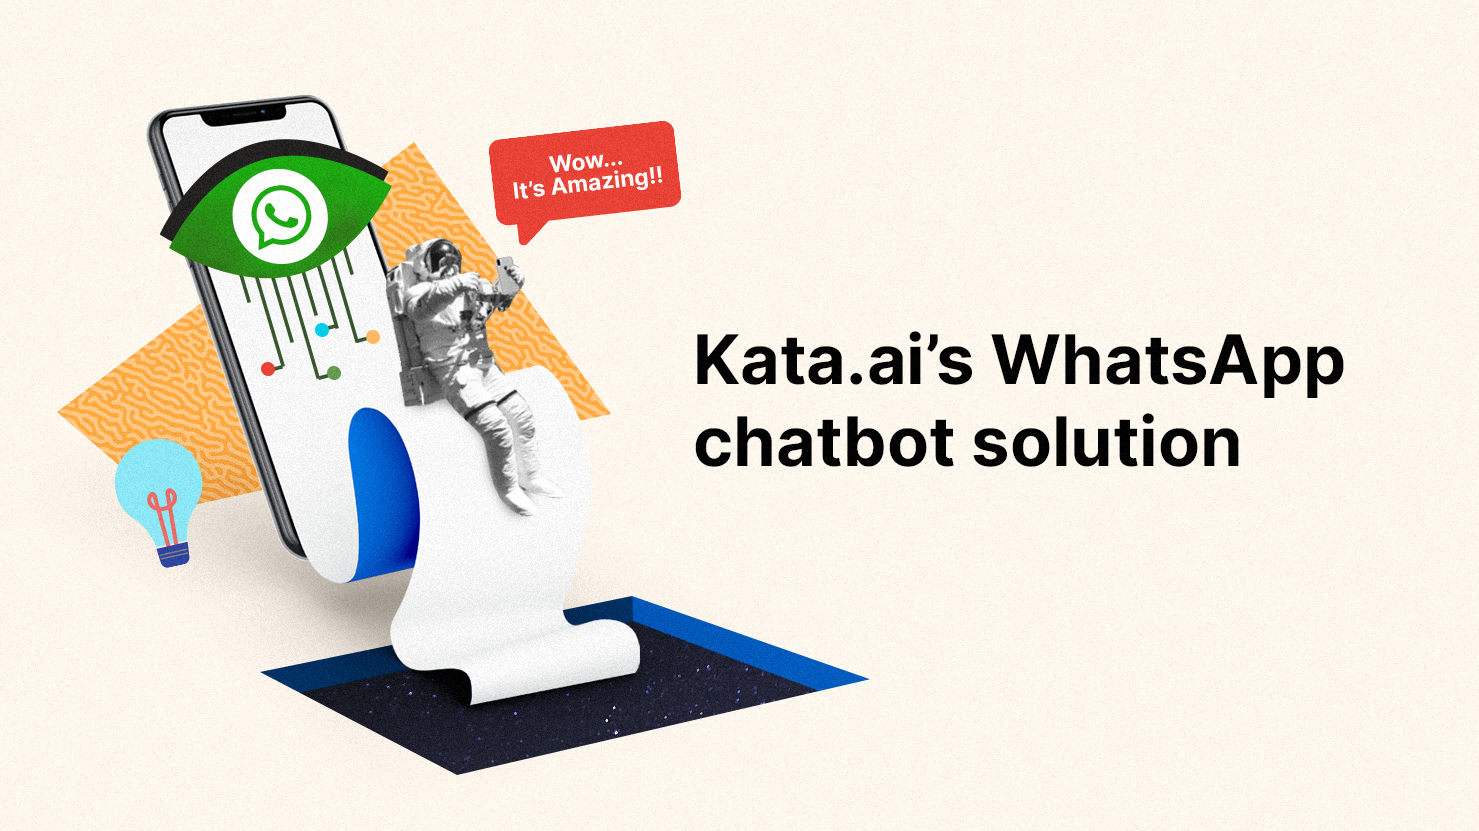 After we discussed the benefits of chatbot for WhatsApp, Let's see how Kata.ai is helping businesses with our WhatsApp chatbot solution (Illustration by Kata.ai)